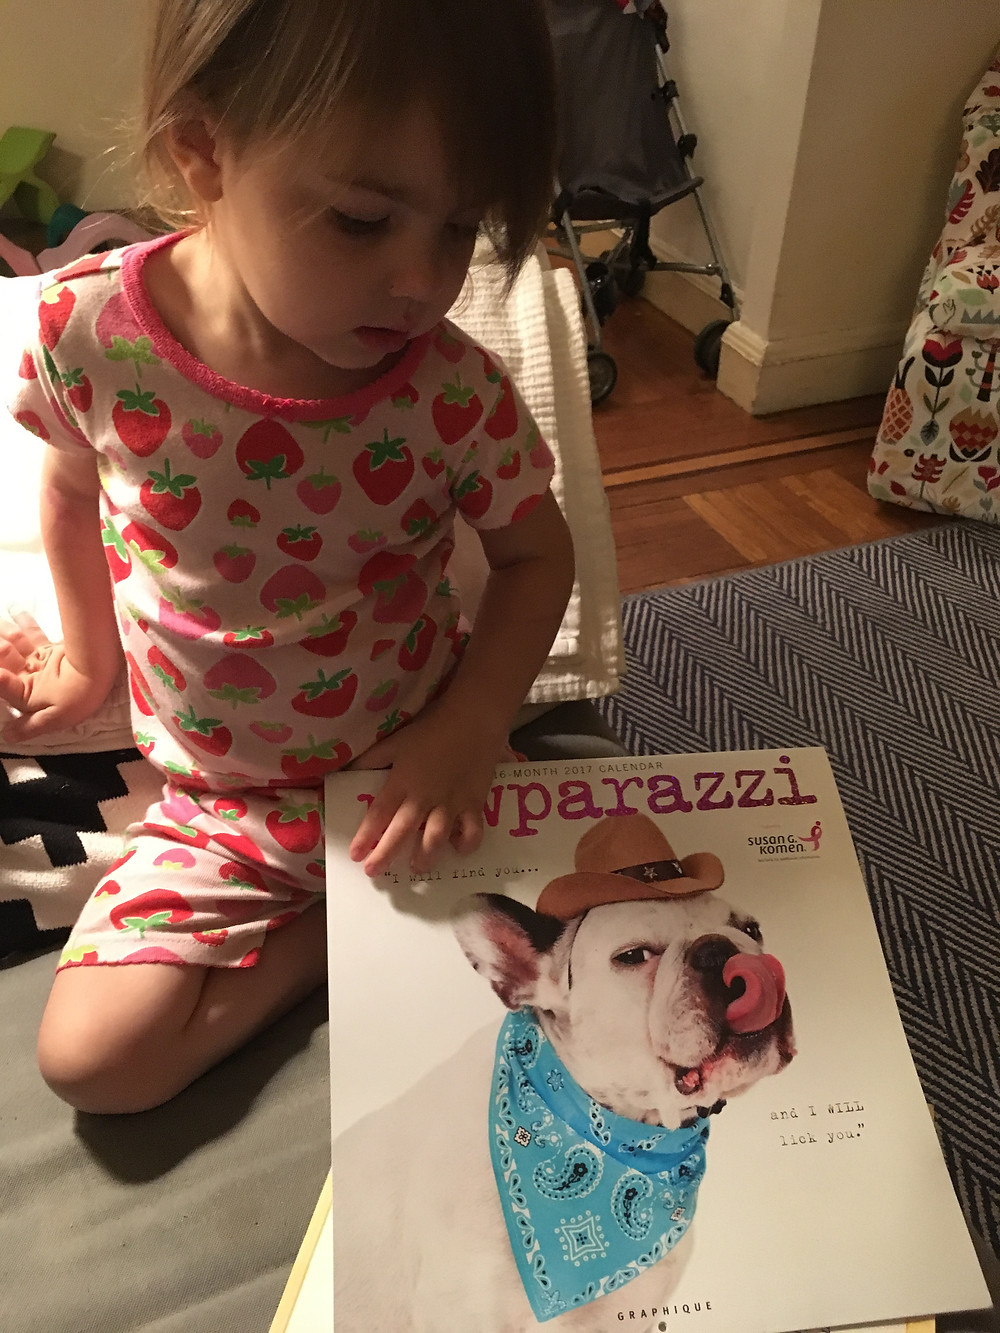 Sometimes a nighttime story includes the French Bulldog calendar her Aunt gave her for Christmas.